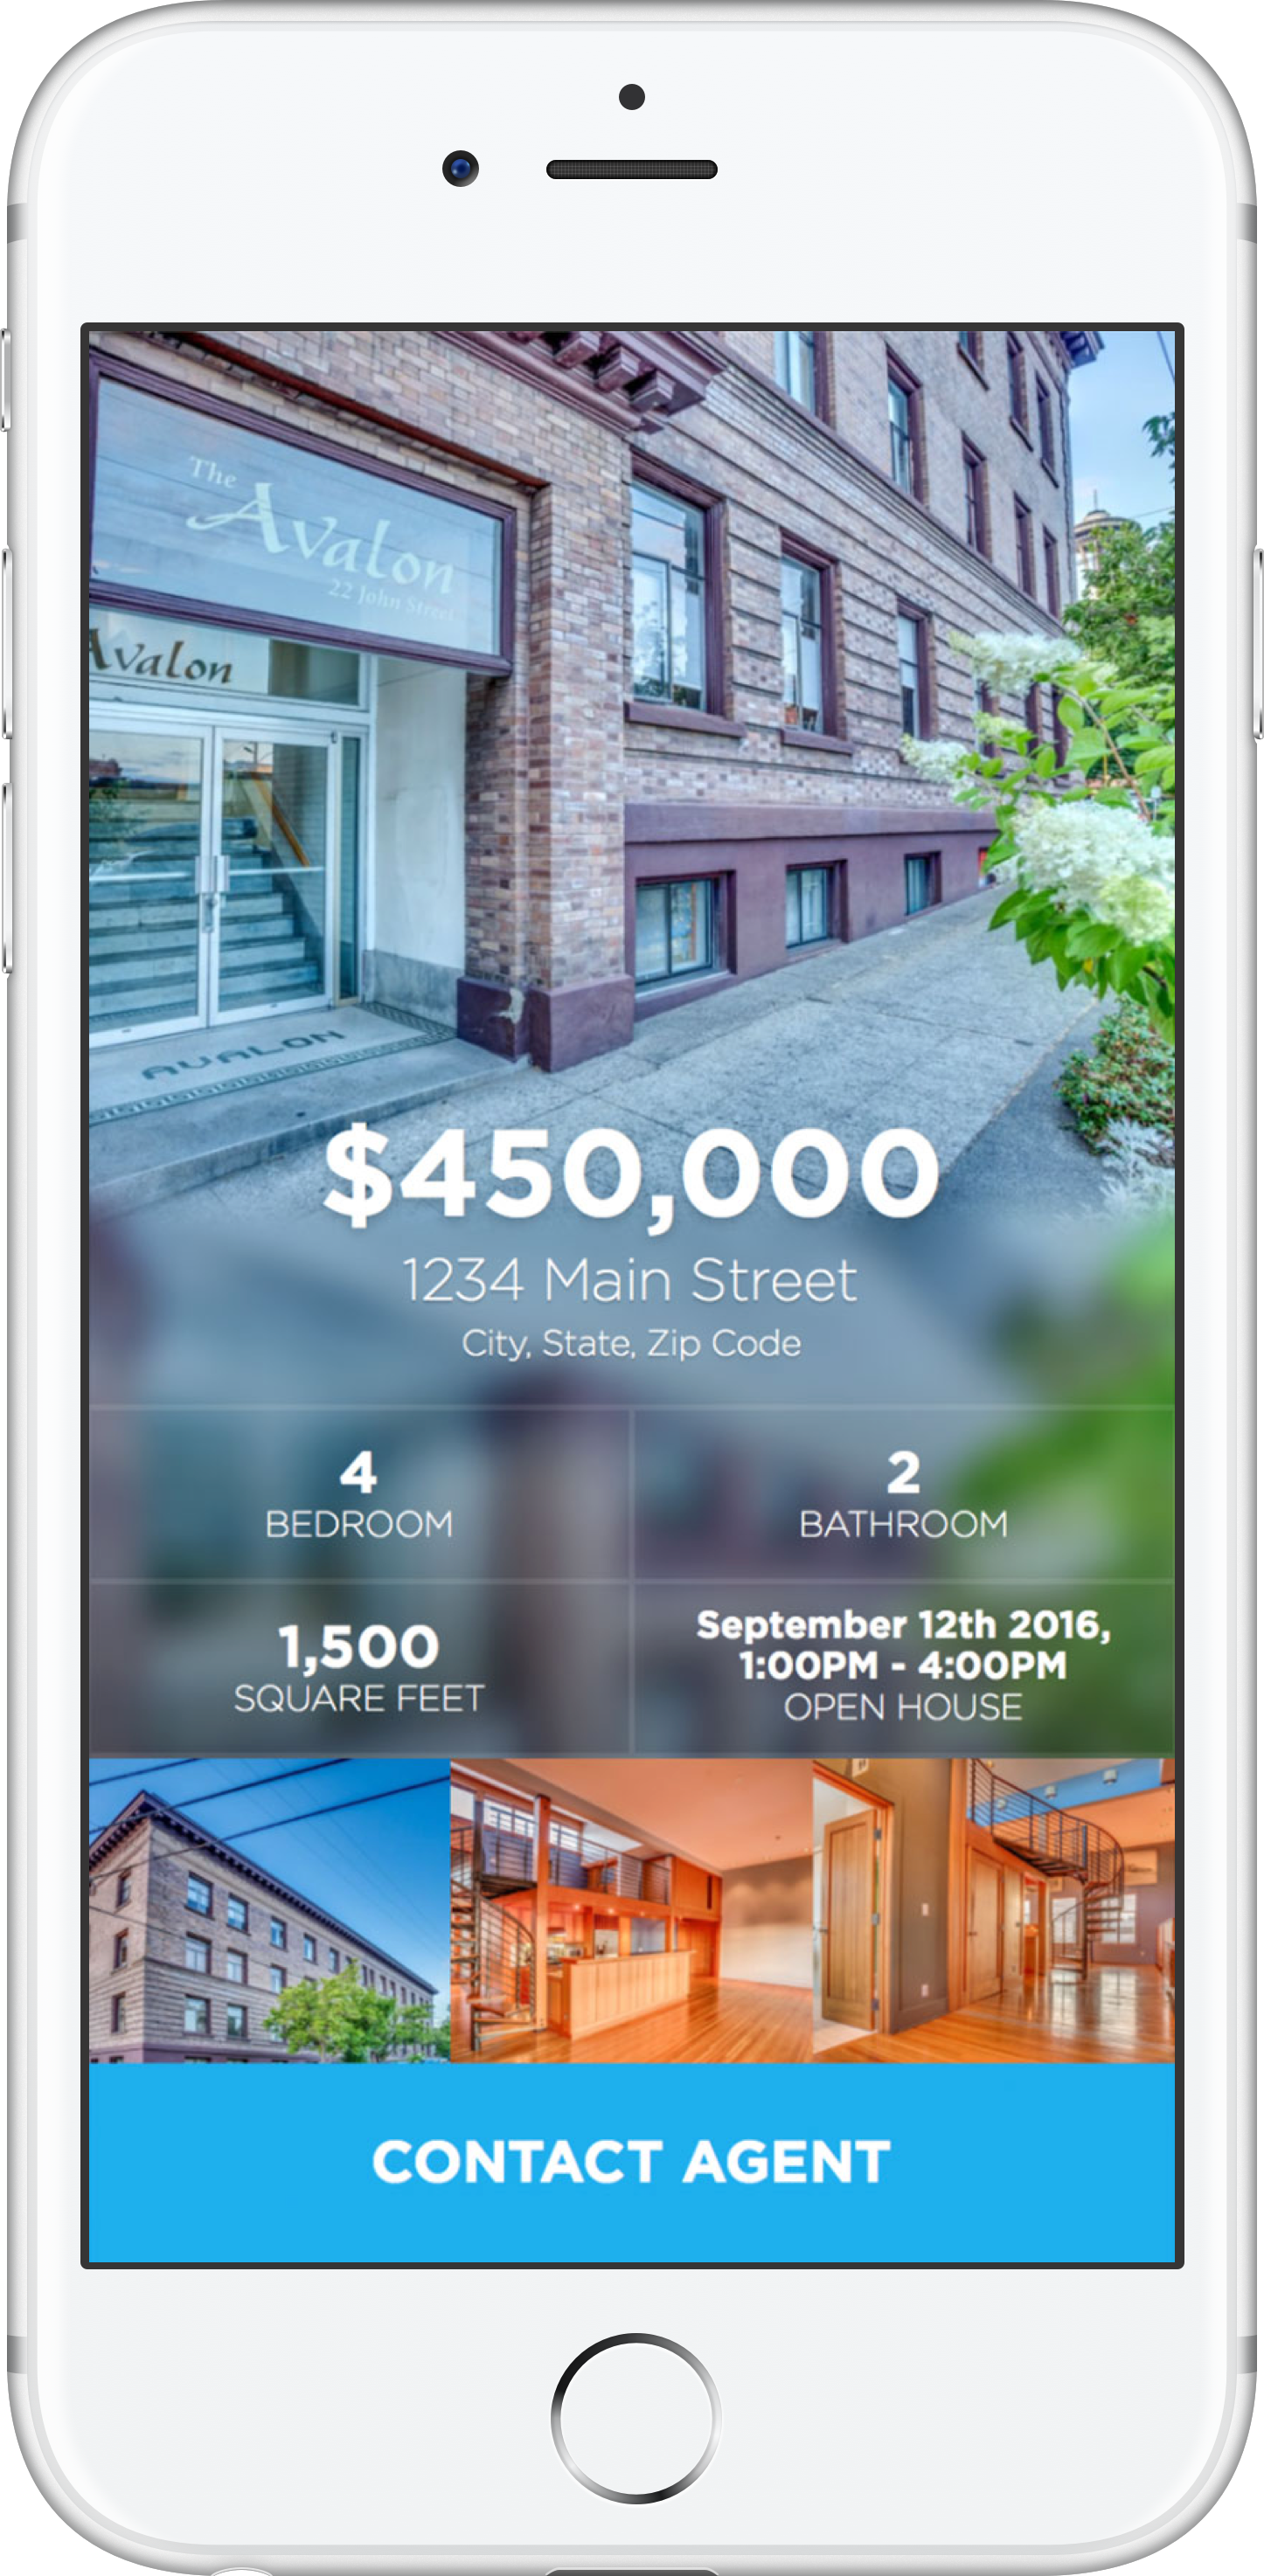 RE/MAX Property Template Phone